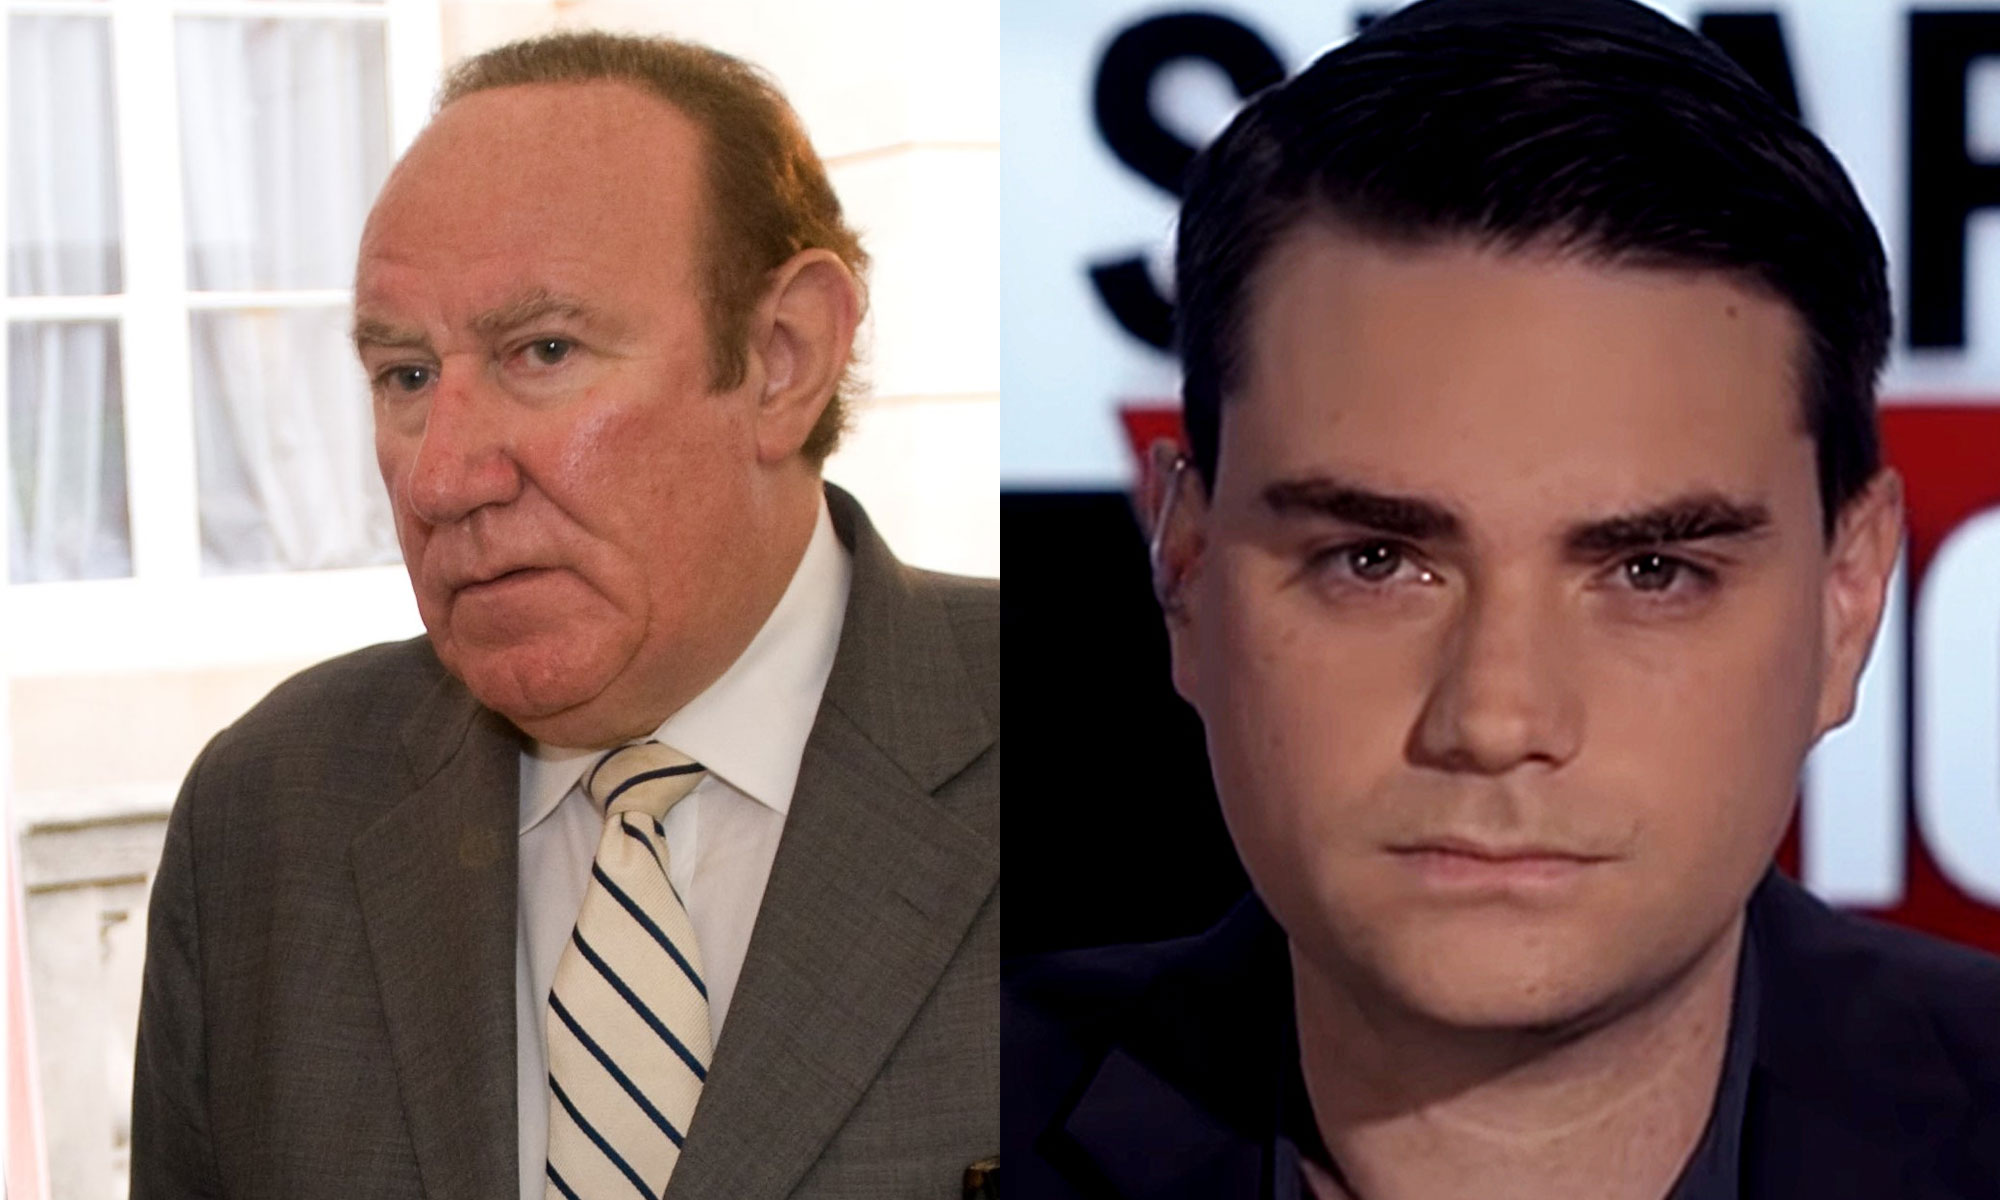 Ben Shapiro and Andrew Neil